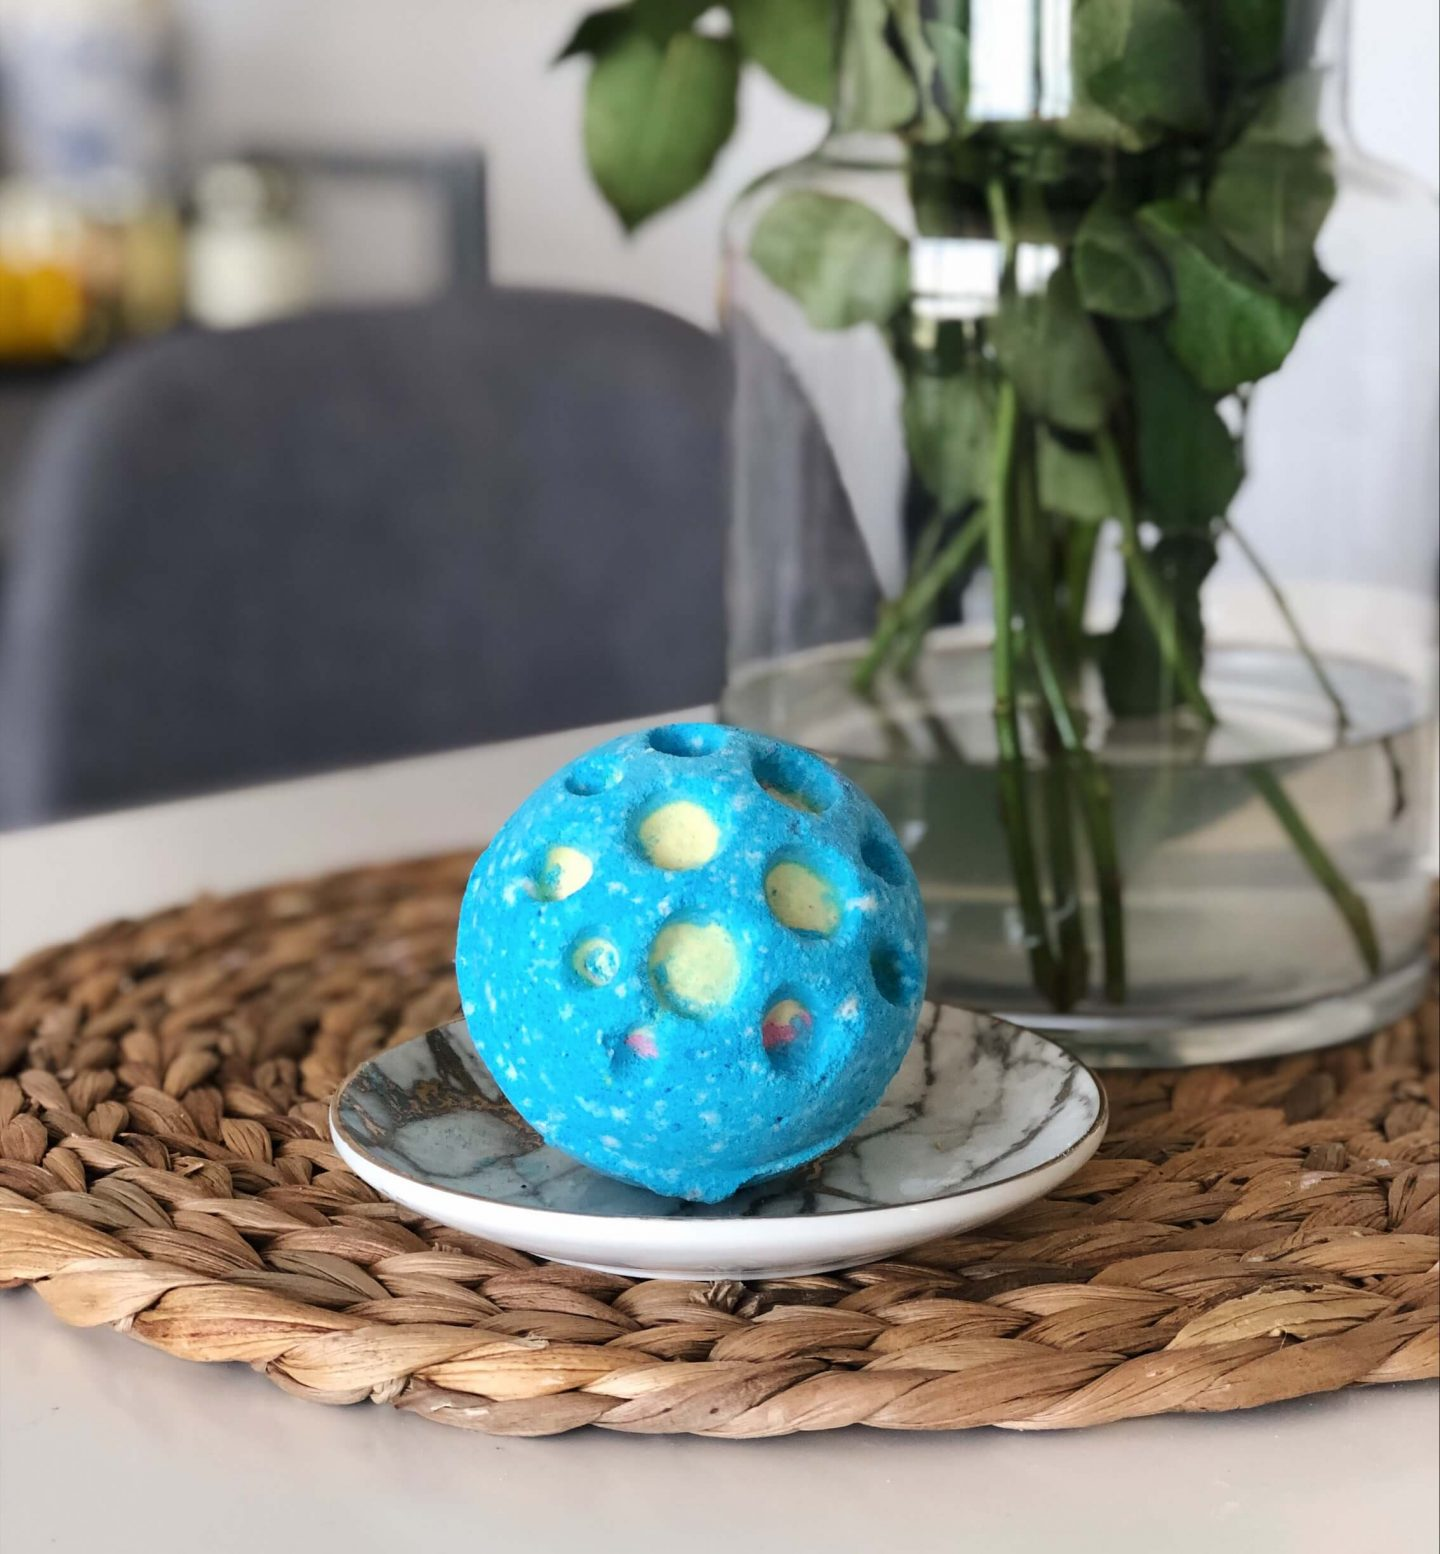 Lush bath bombs Topknotch blog Christmas gift guide